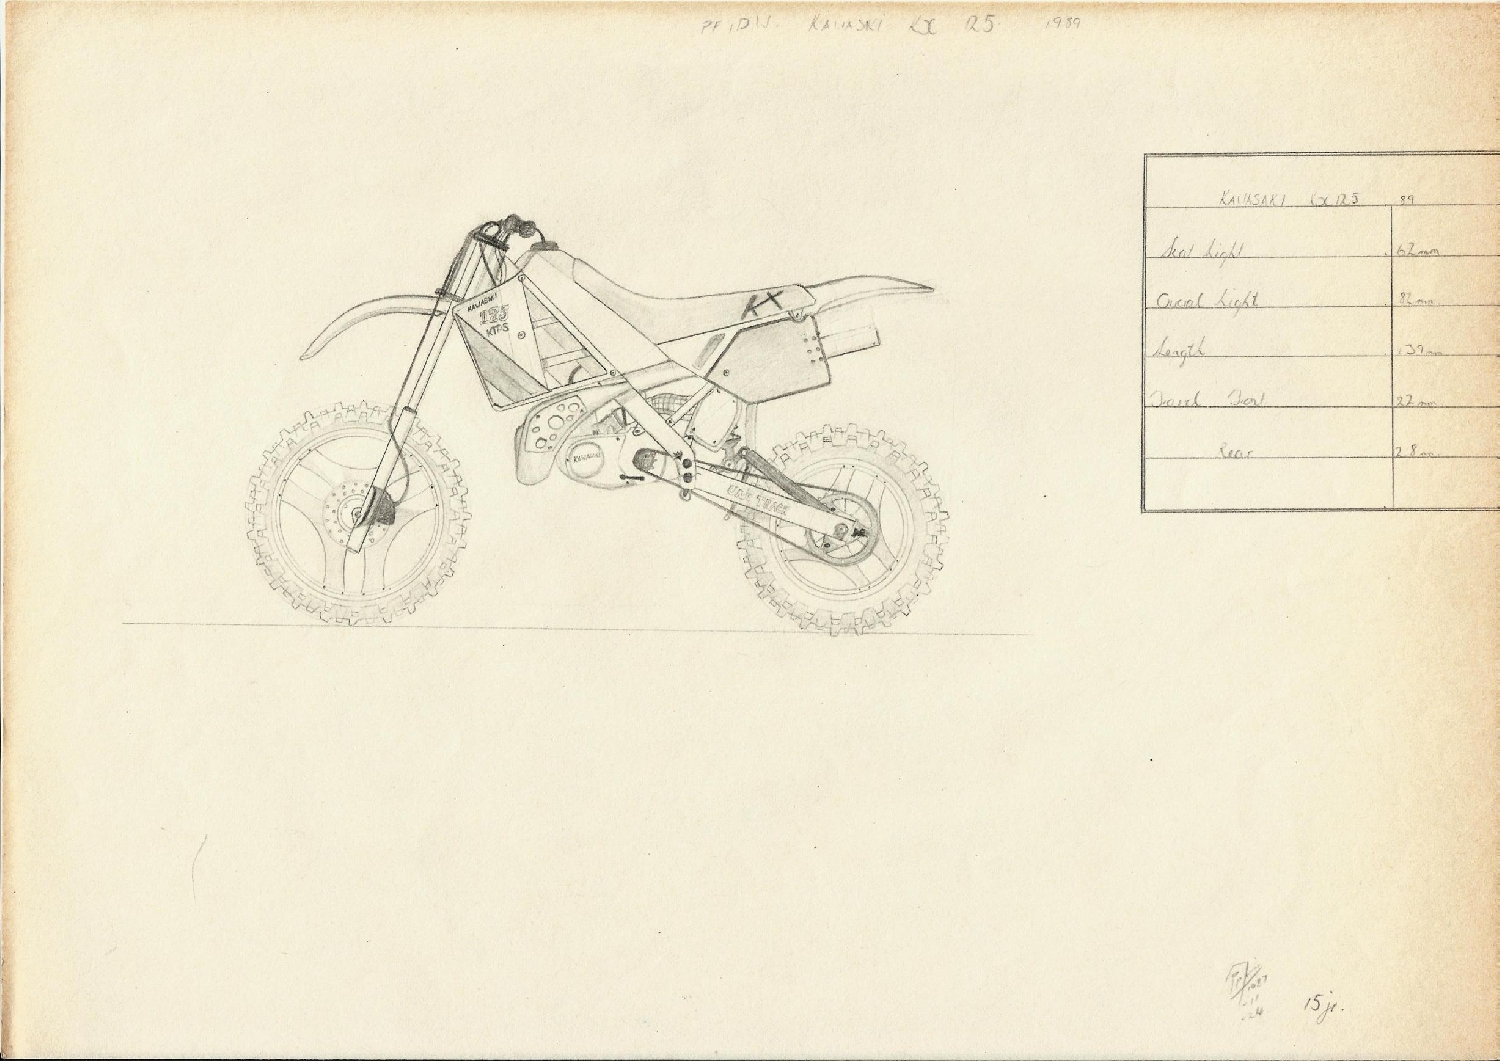 19871124 KAWASAKI KX125 CONCEPT FOR 1989-1303.jpg